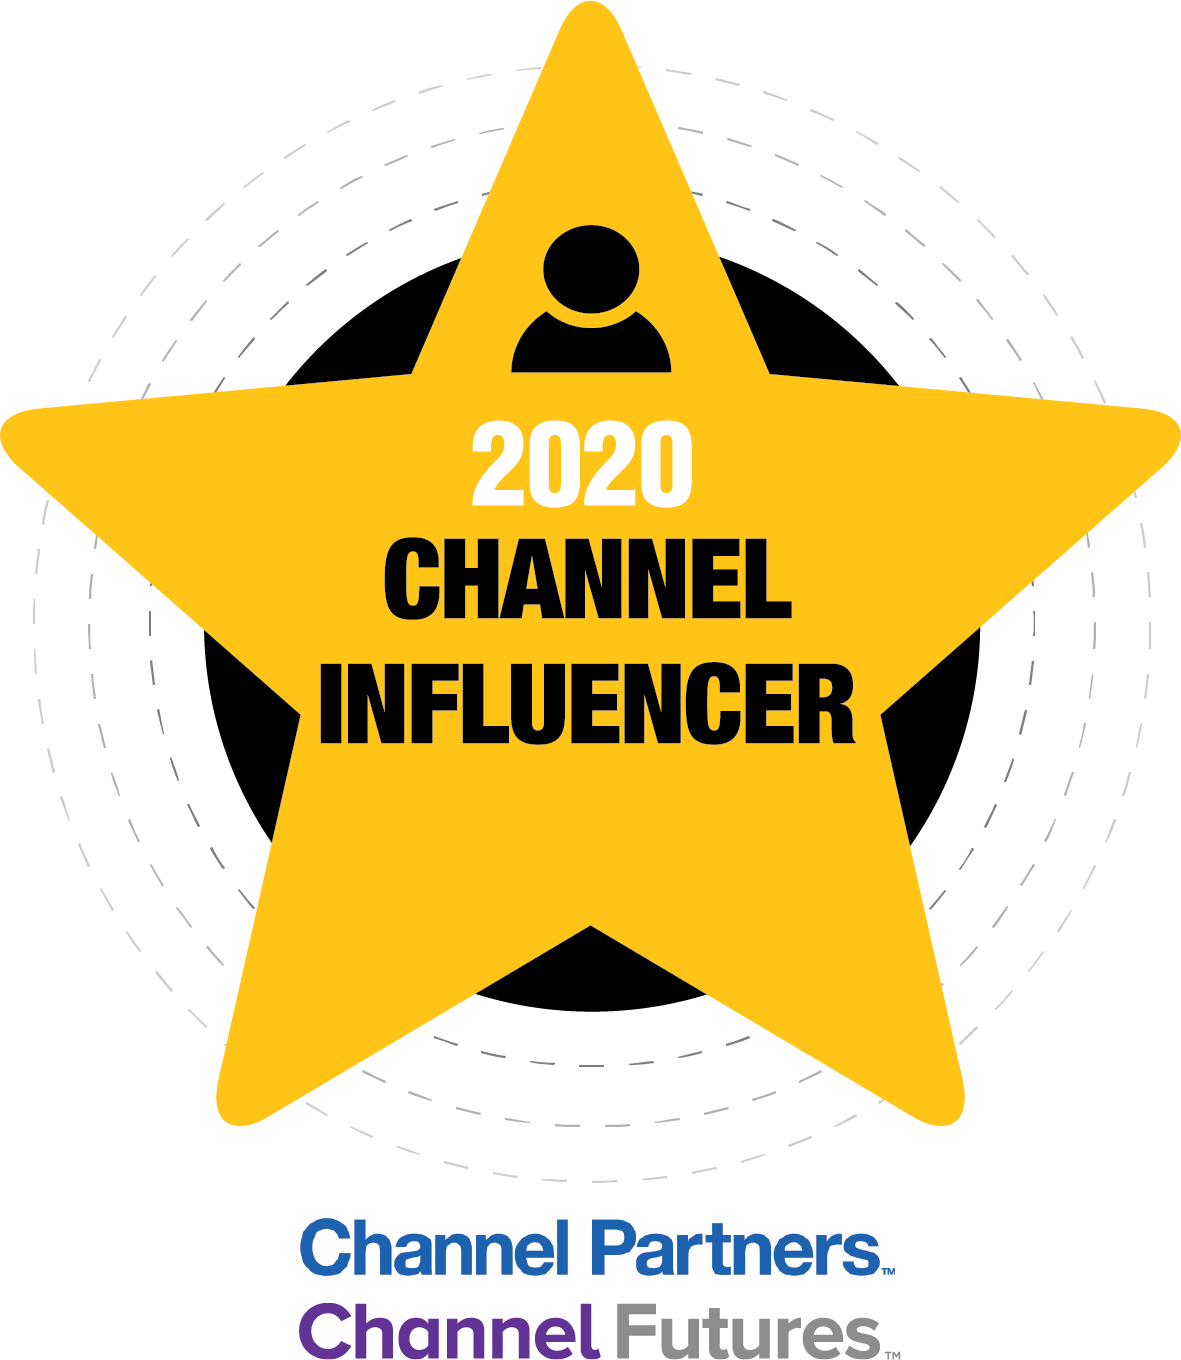 Kevin Rooney Named 2020 Channel Influencer by Channel Partners, Channel Futures